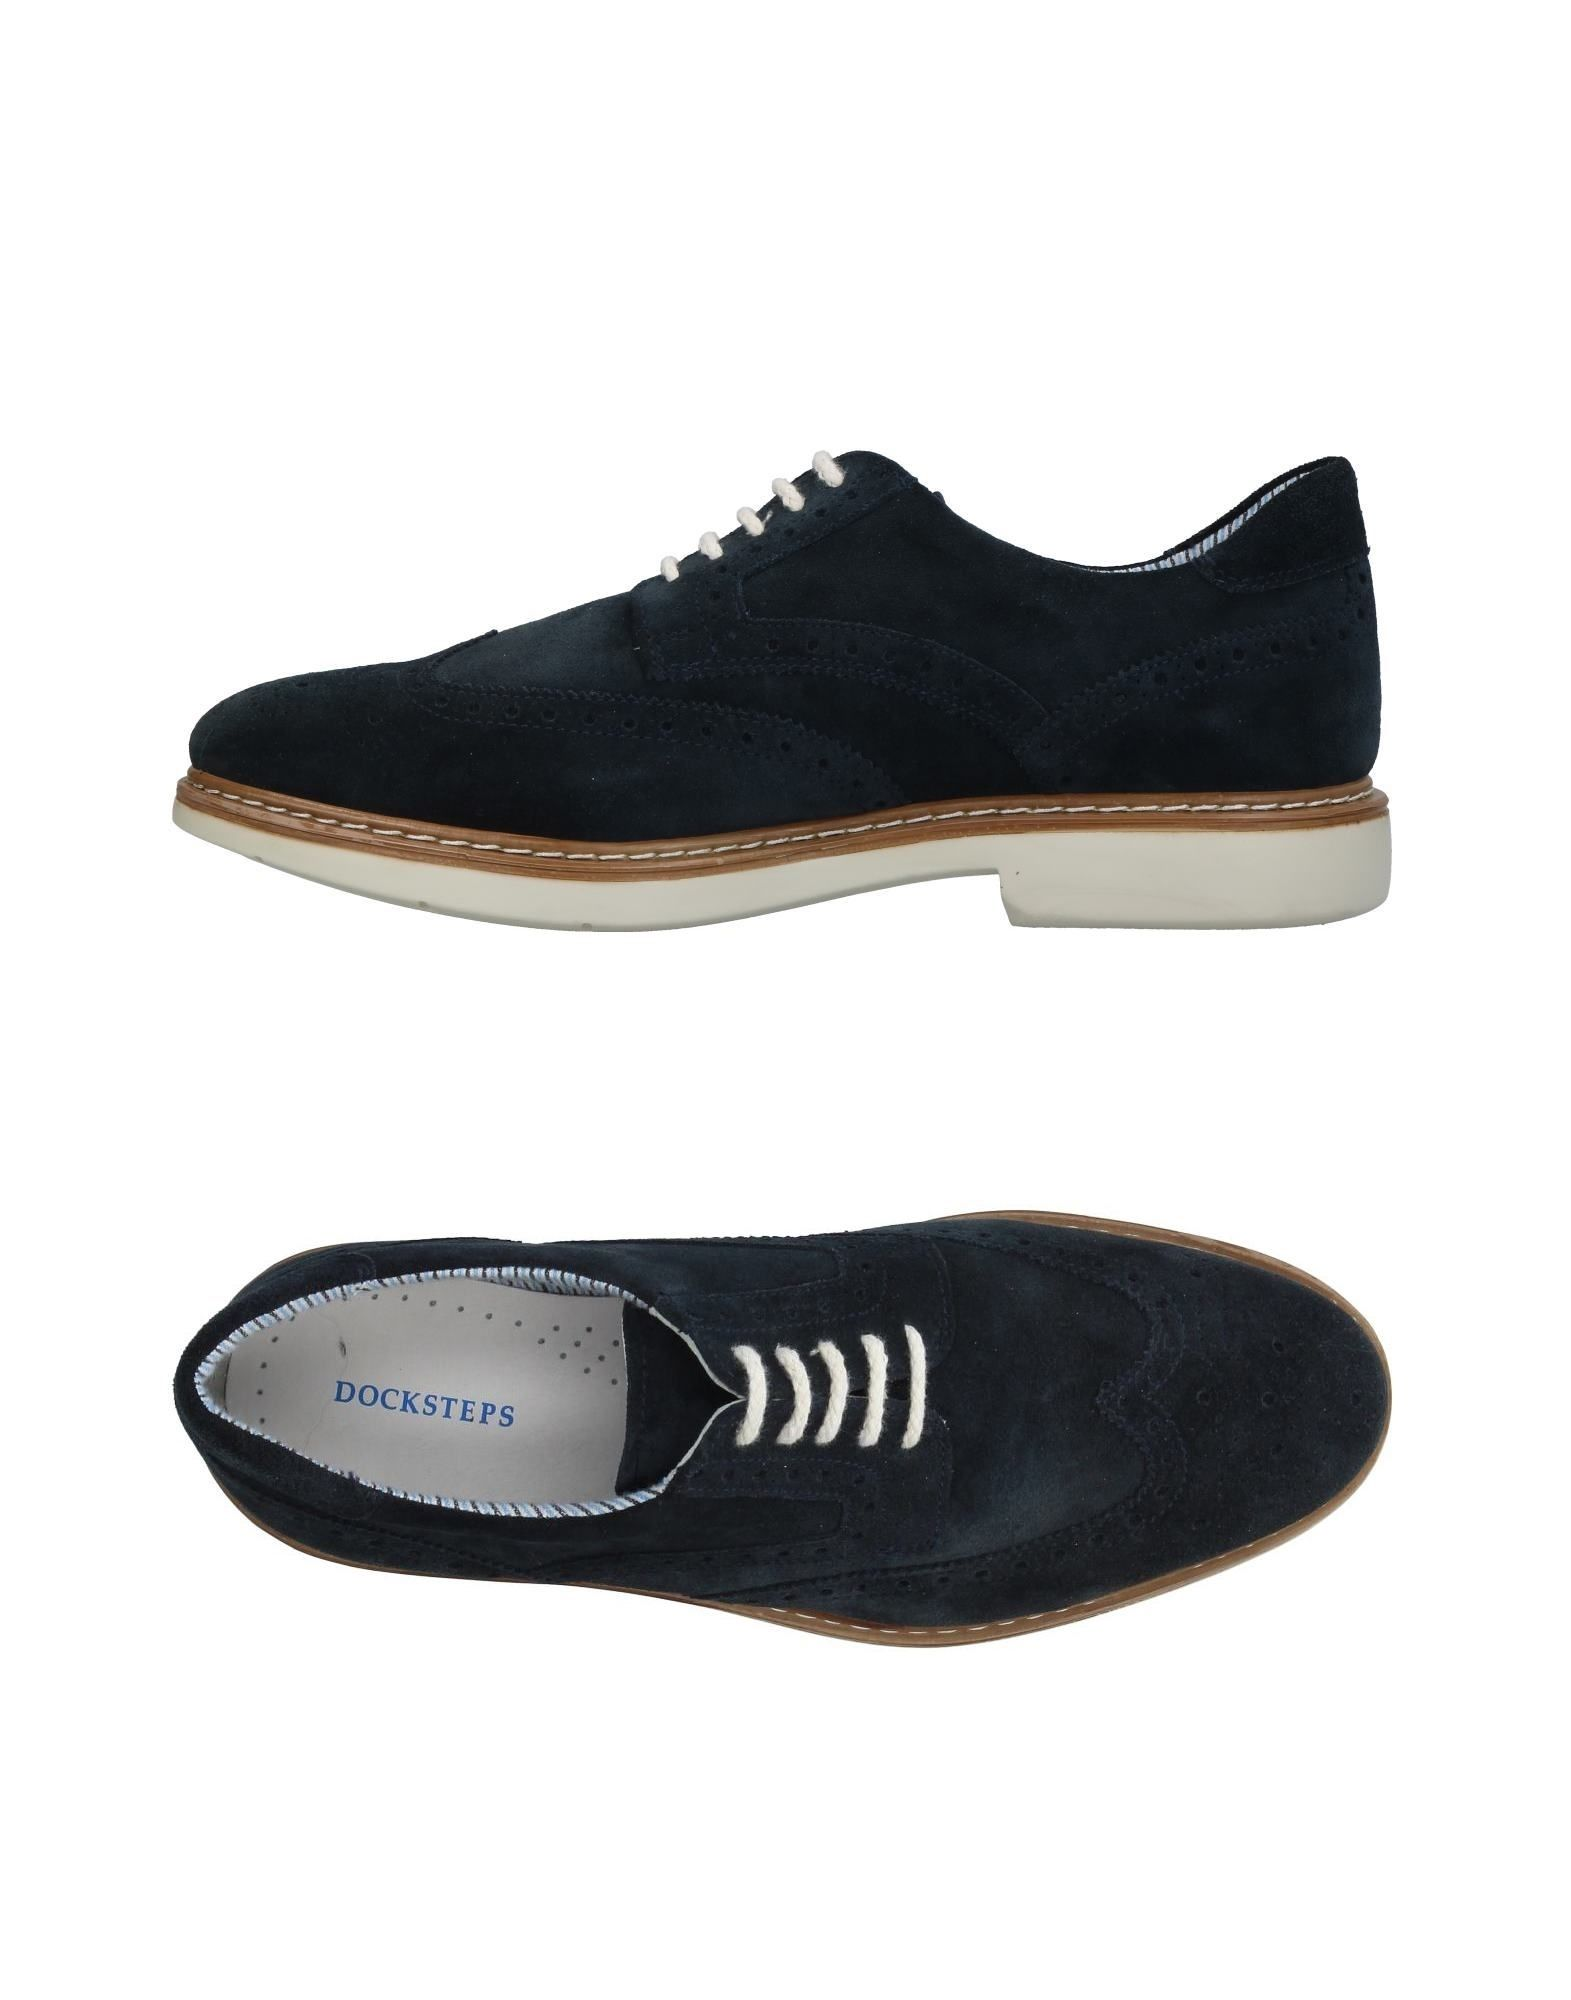 Chaussures - Chaussures À Lacets Docksteps yeOZn6X0Sh